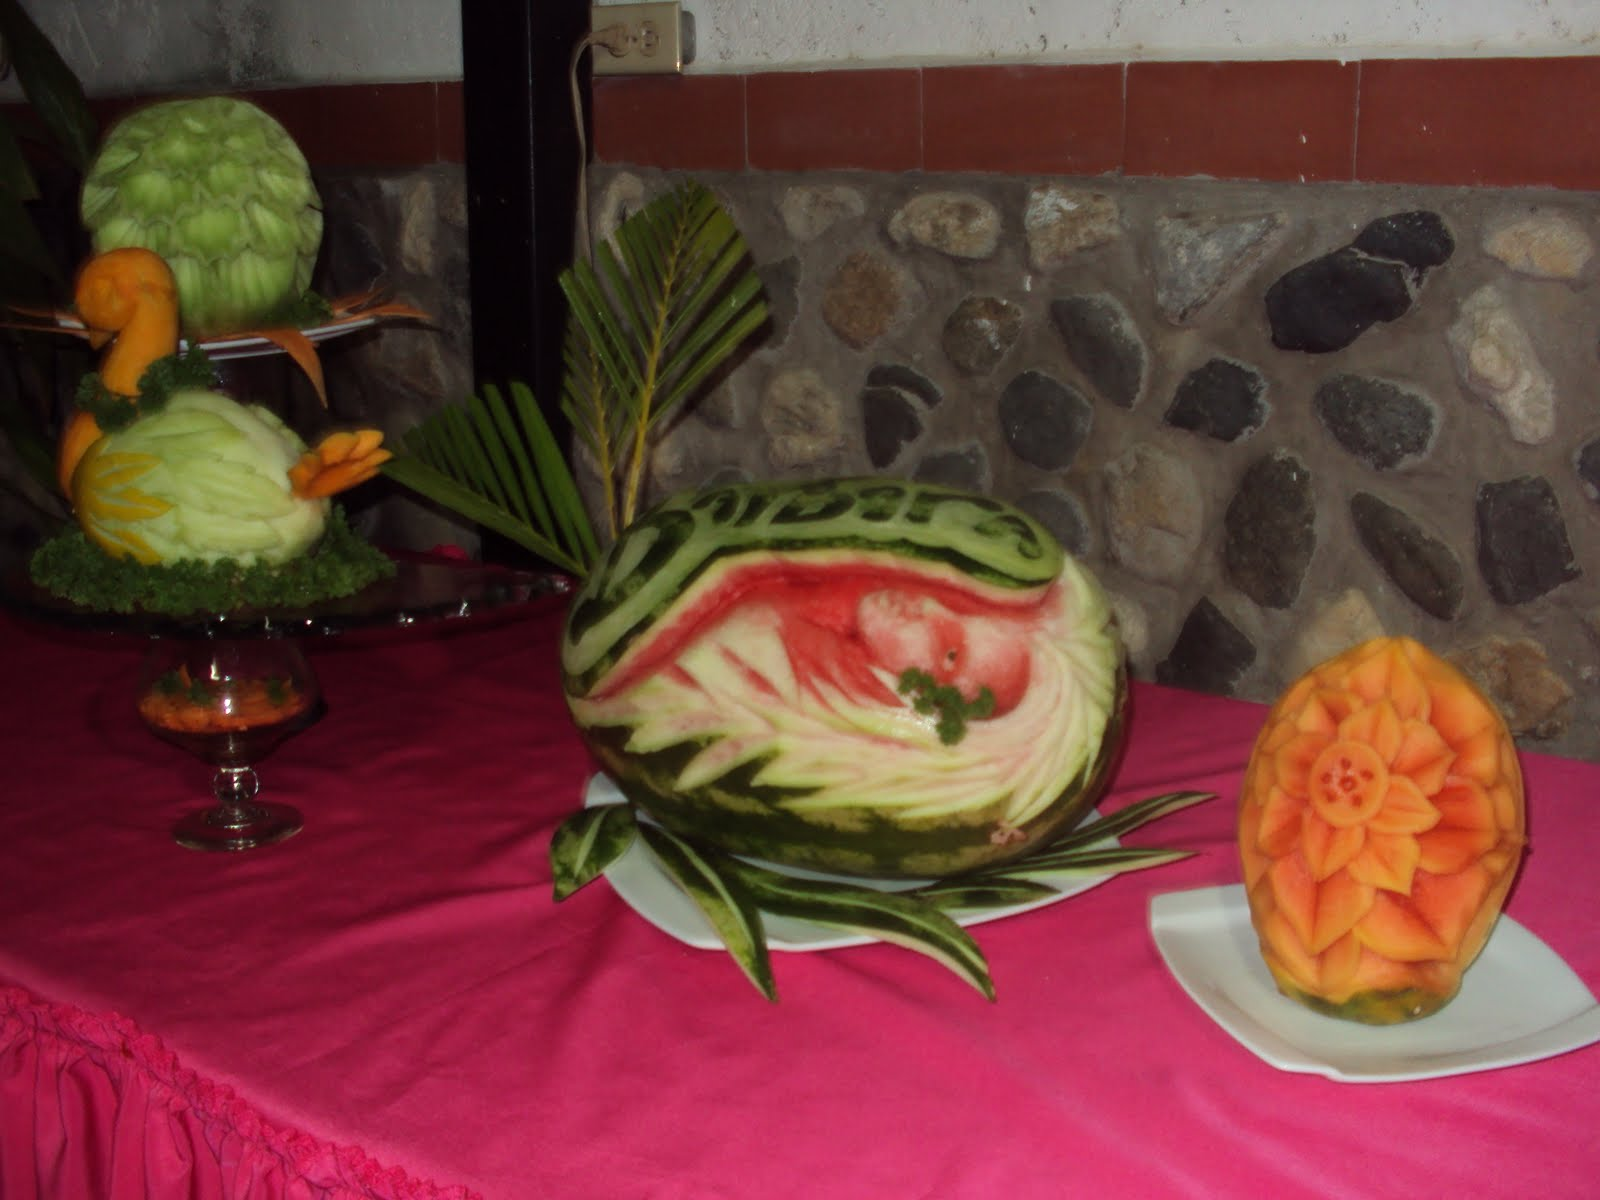 Foolery decoracion con frutas for Secar frutas para decoracion